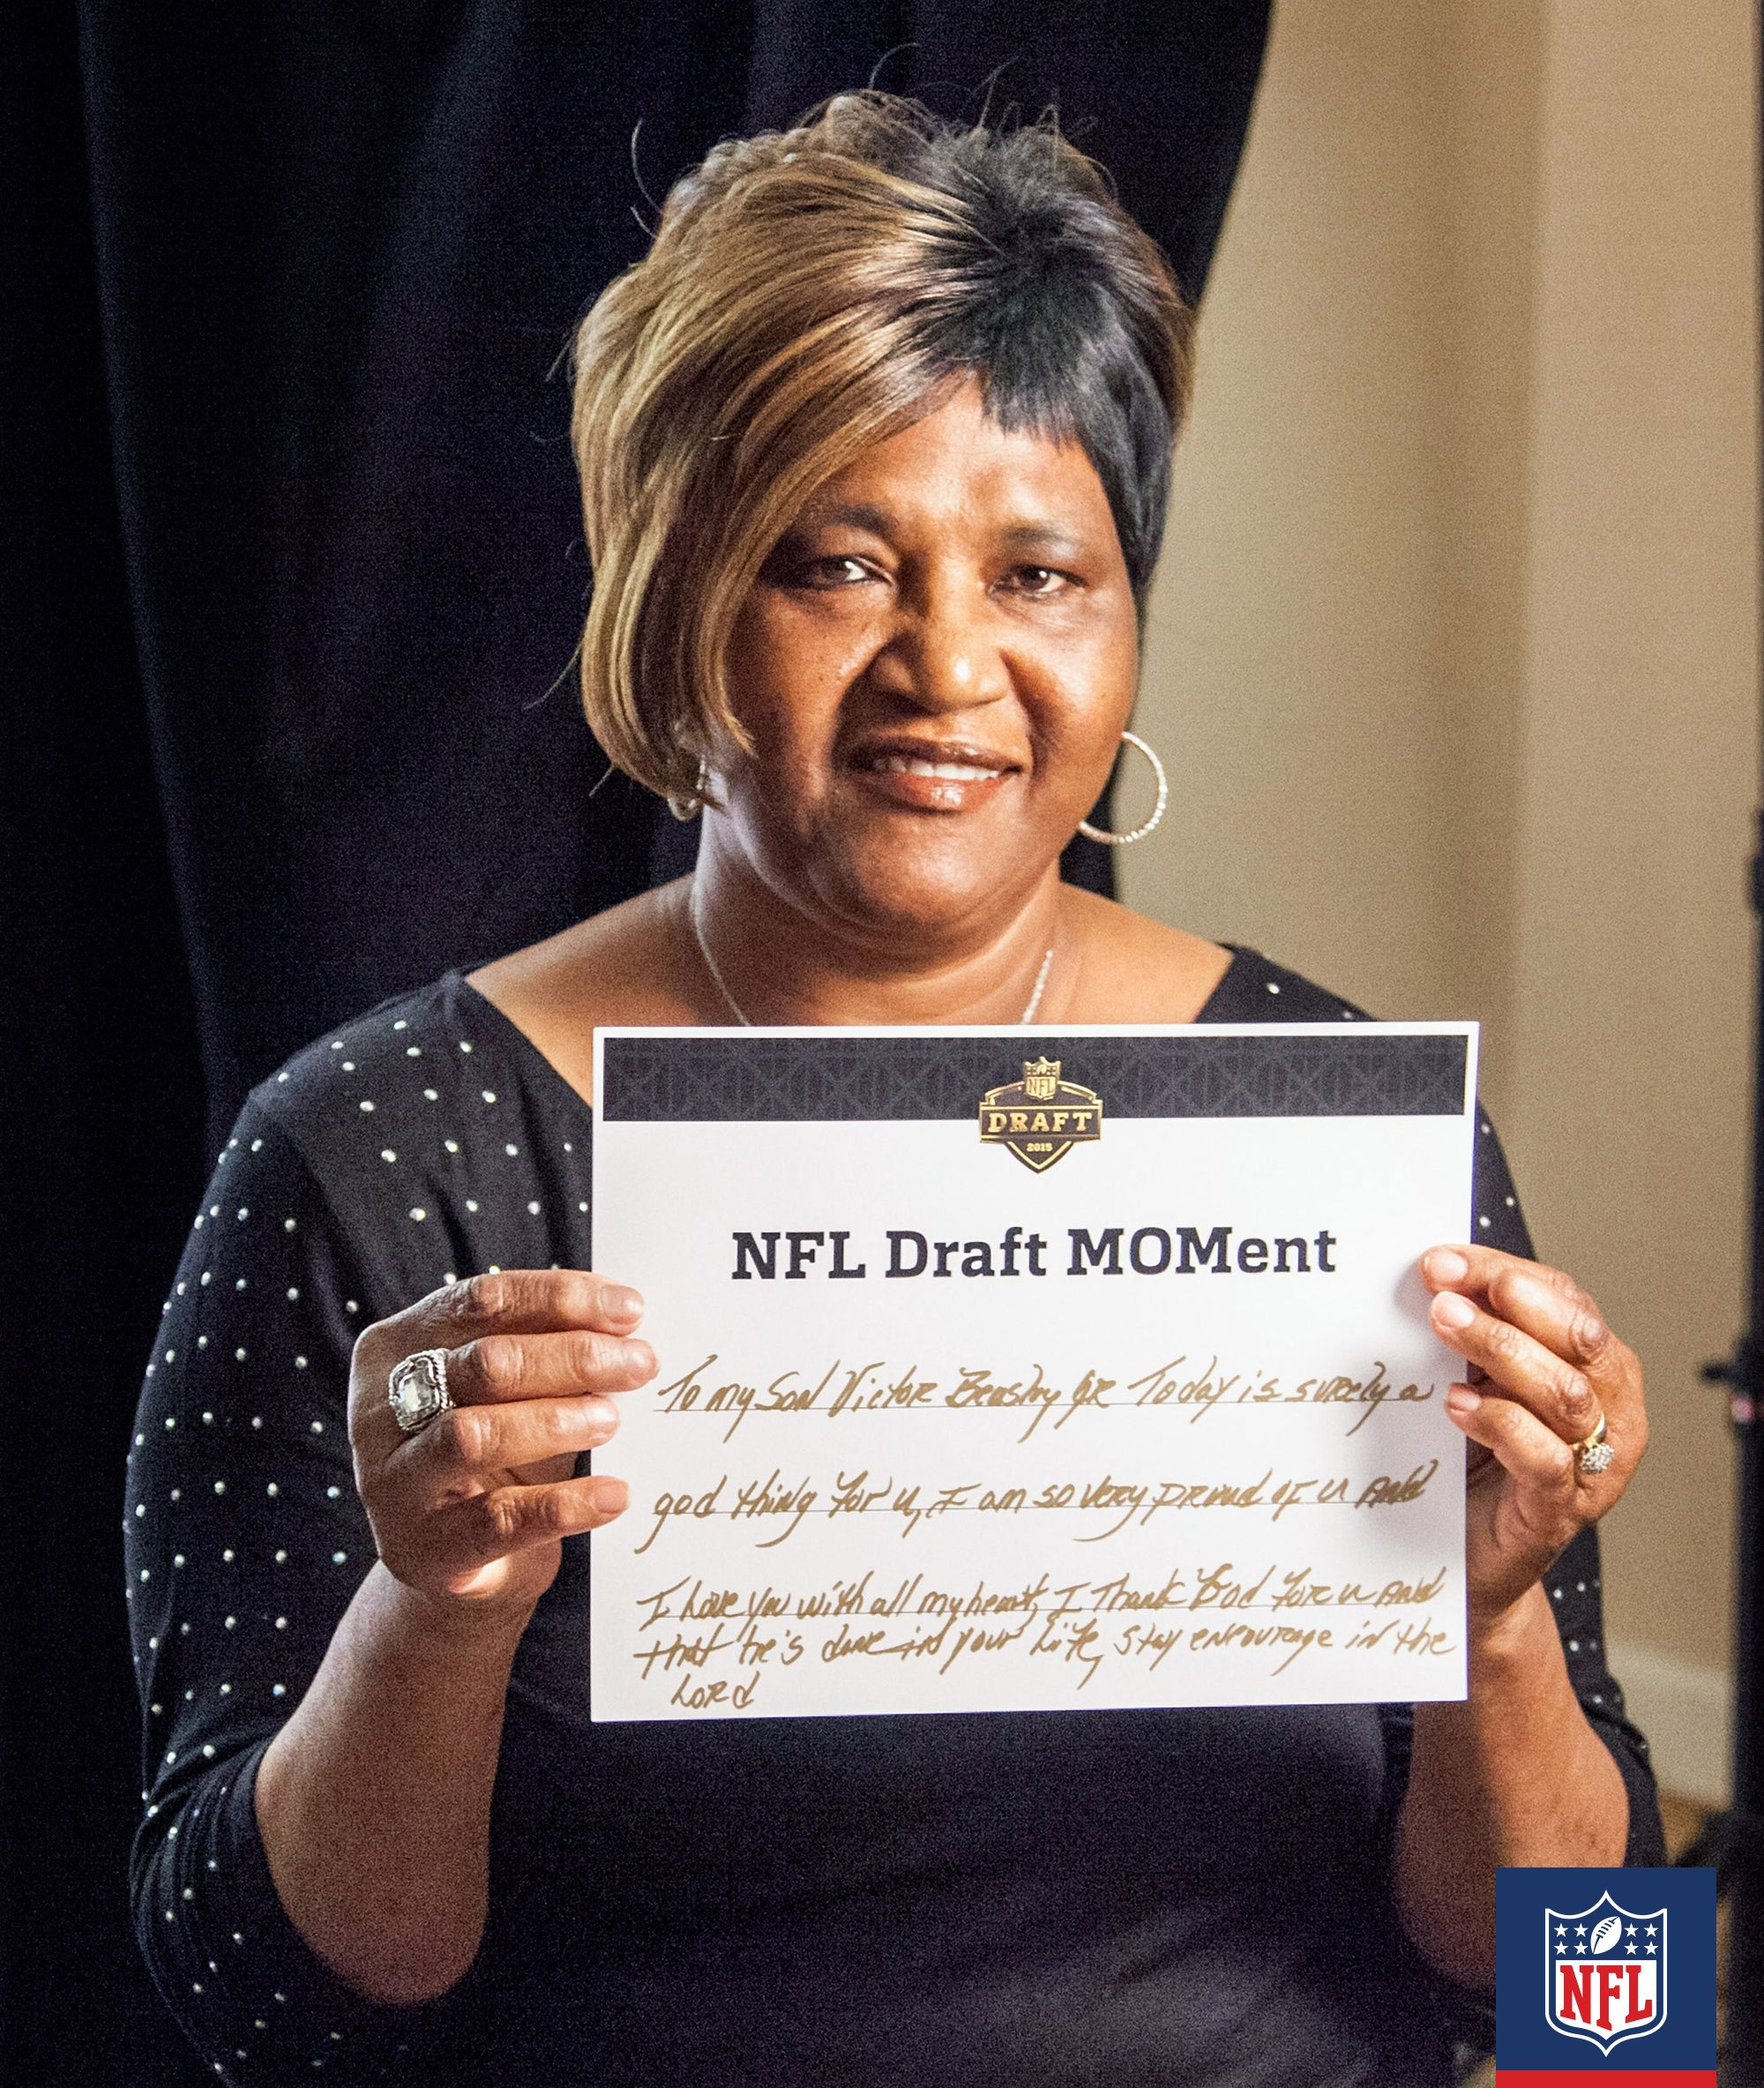 Garnette Jones Mom Of Dallas Cowboys Pick Byron Jones Had Some Major Words Of Support For Her Son Welcome To The Nfl Nfl Fans Nfl Players Words Of Support